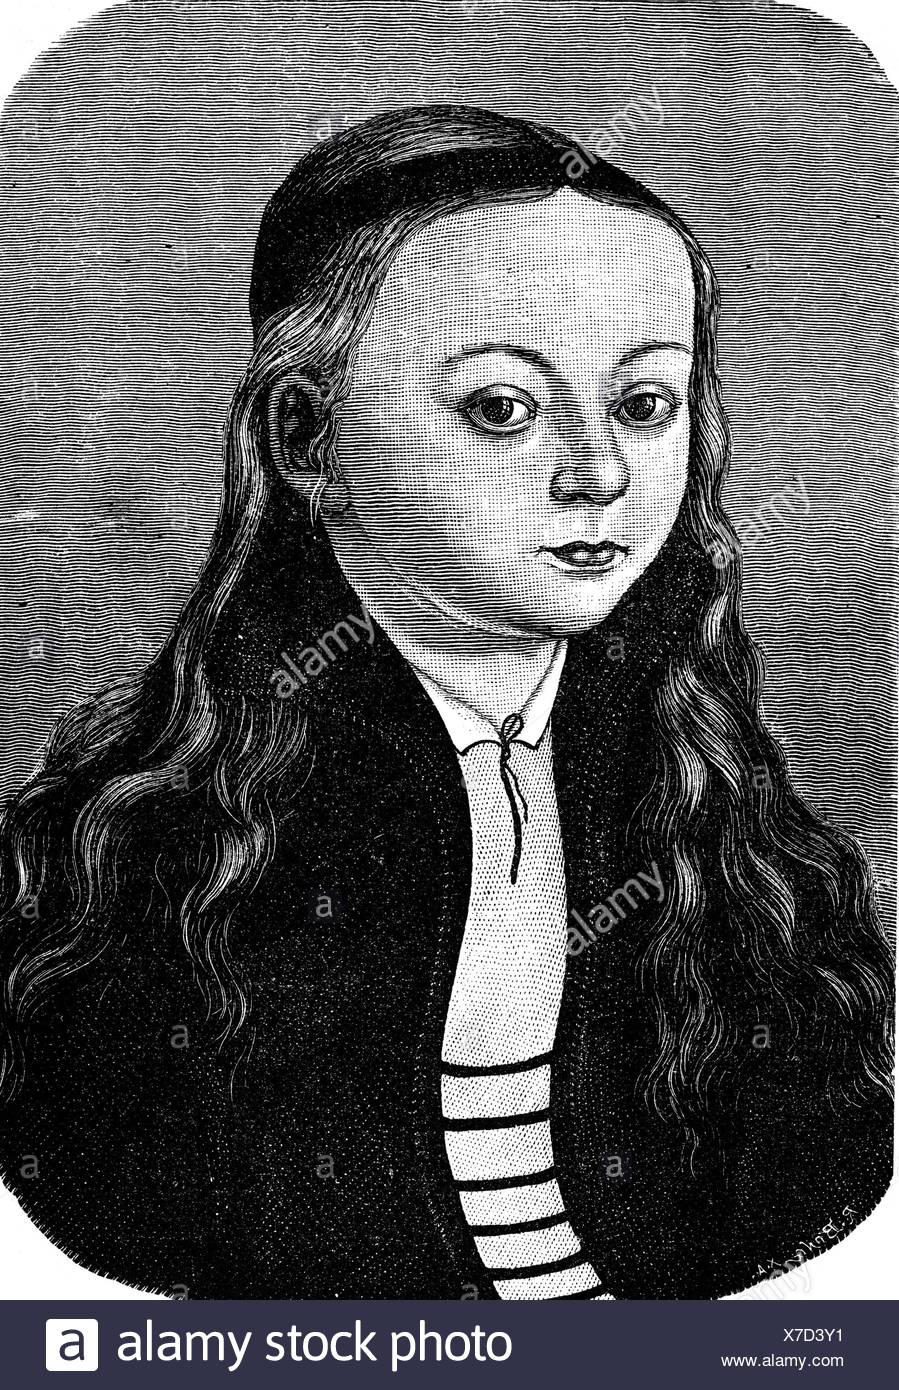 Luther, Martin, 10.11.1483 - 18.2.1546, German reformer, family, possible portrait of his daughter Magdalena (4.5.1529 - 20.9.1542) by Lukas Cranach, wood engraving, 19th century, Additional-Rights-Clearances-NA - Stock Image